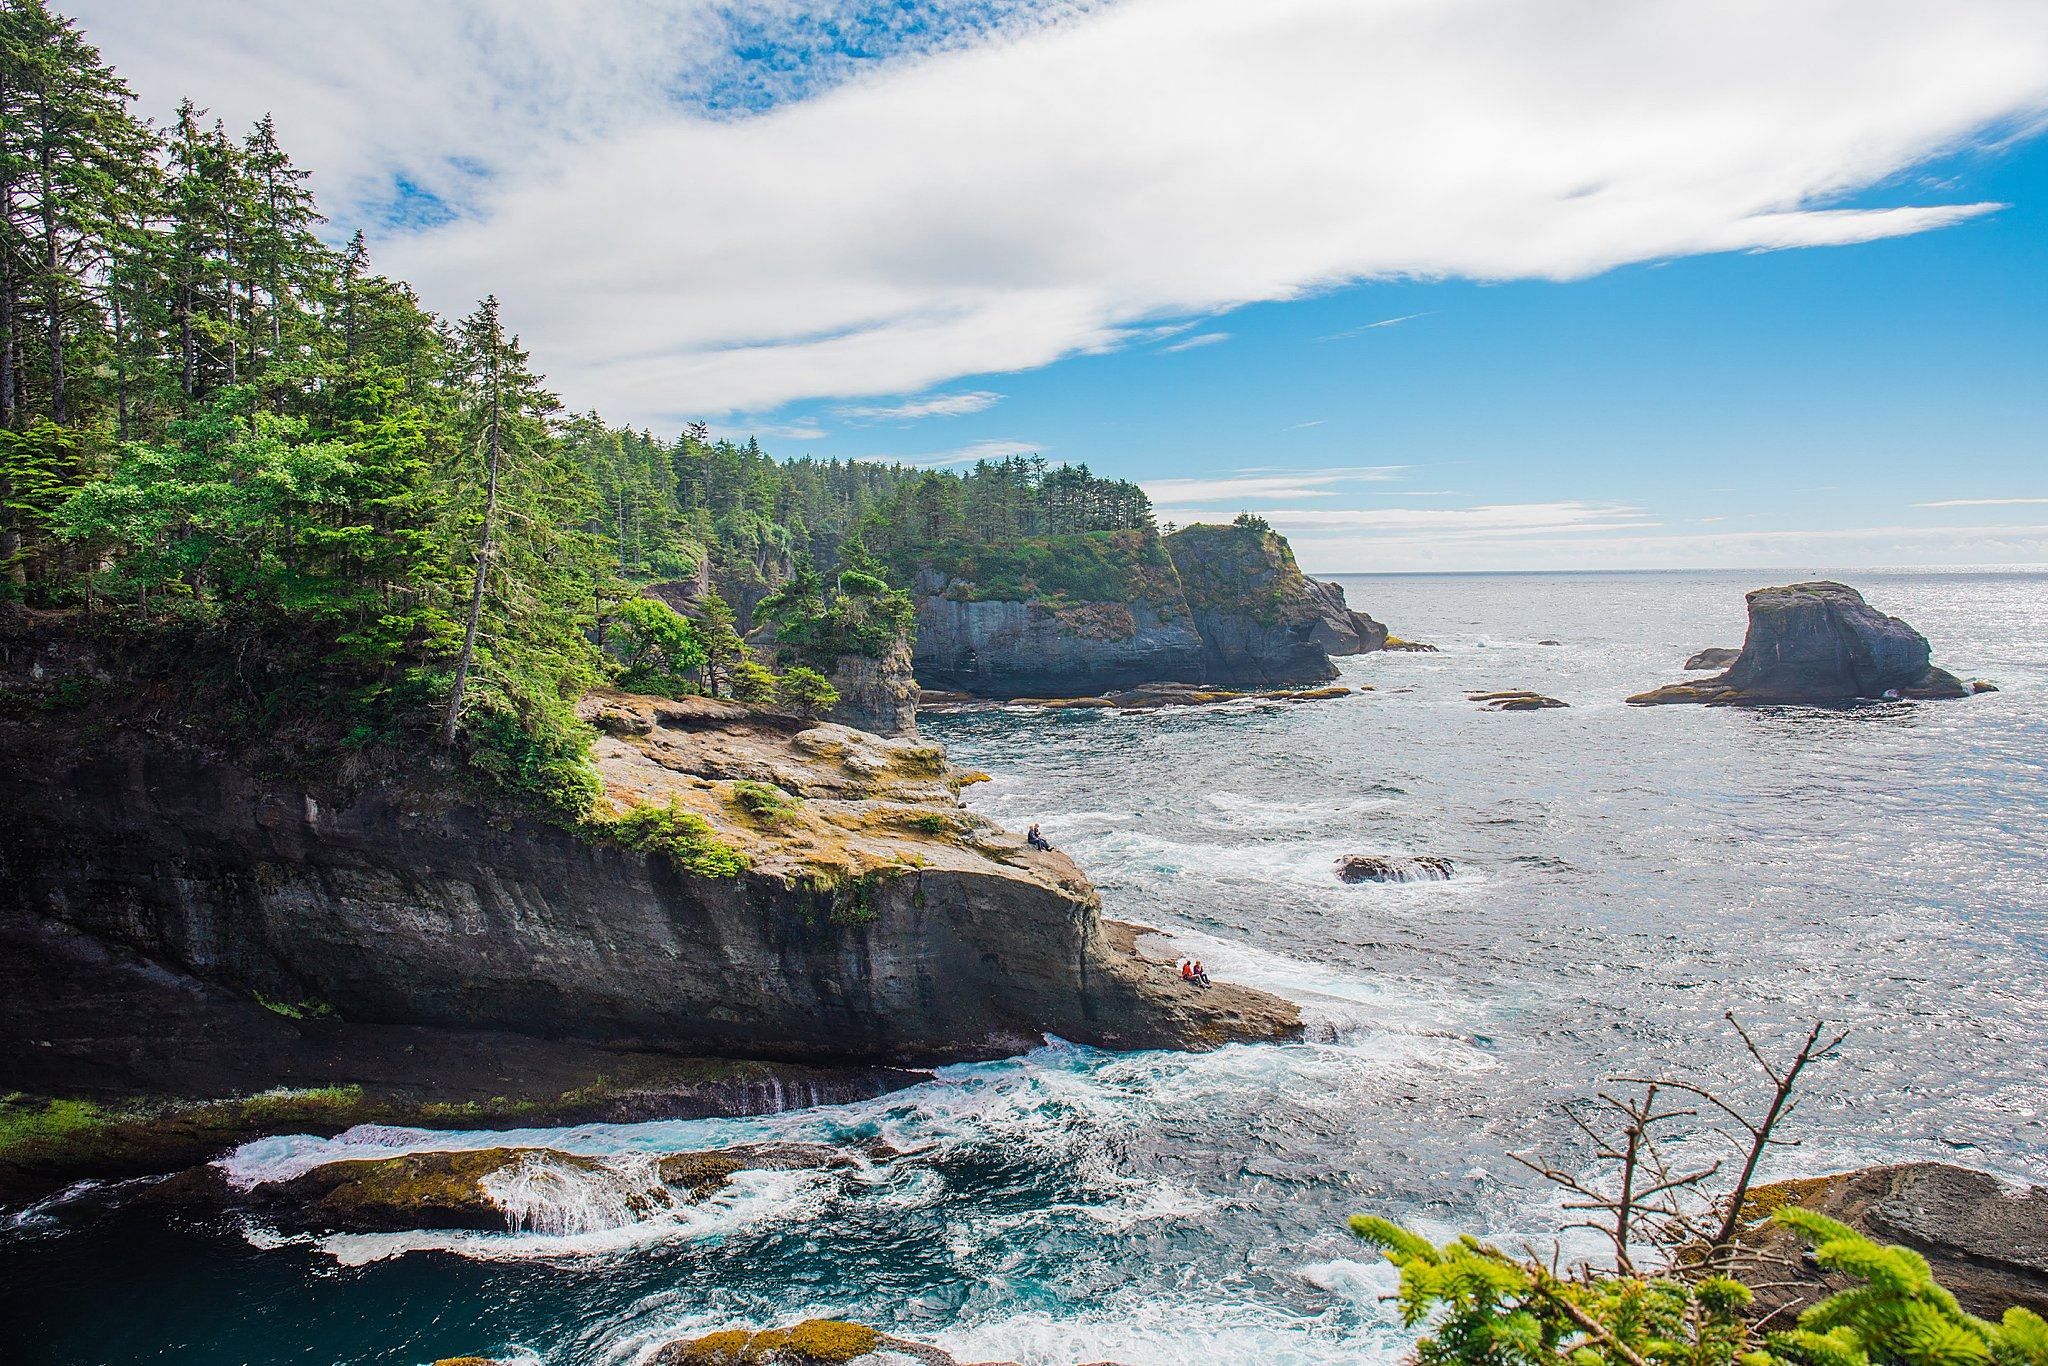 cape flattery, neah bay, olympic national park, olympic peninsula, tatoosh island, northwest, pacific northwest, hiking, 52 hike challenge